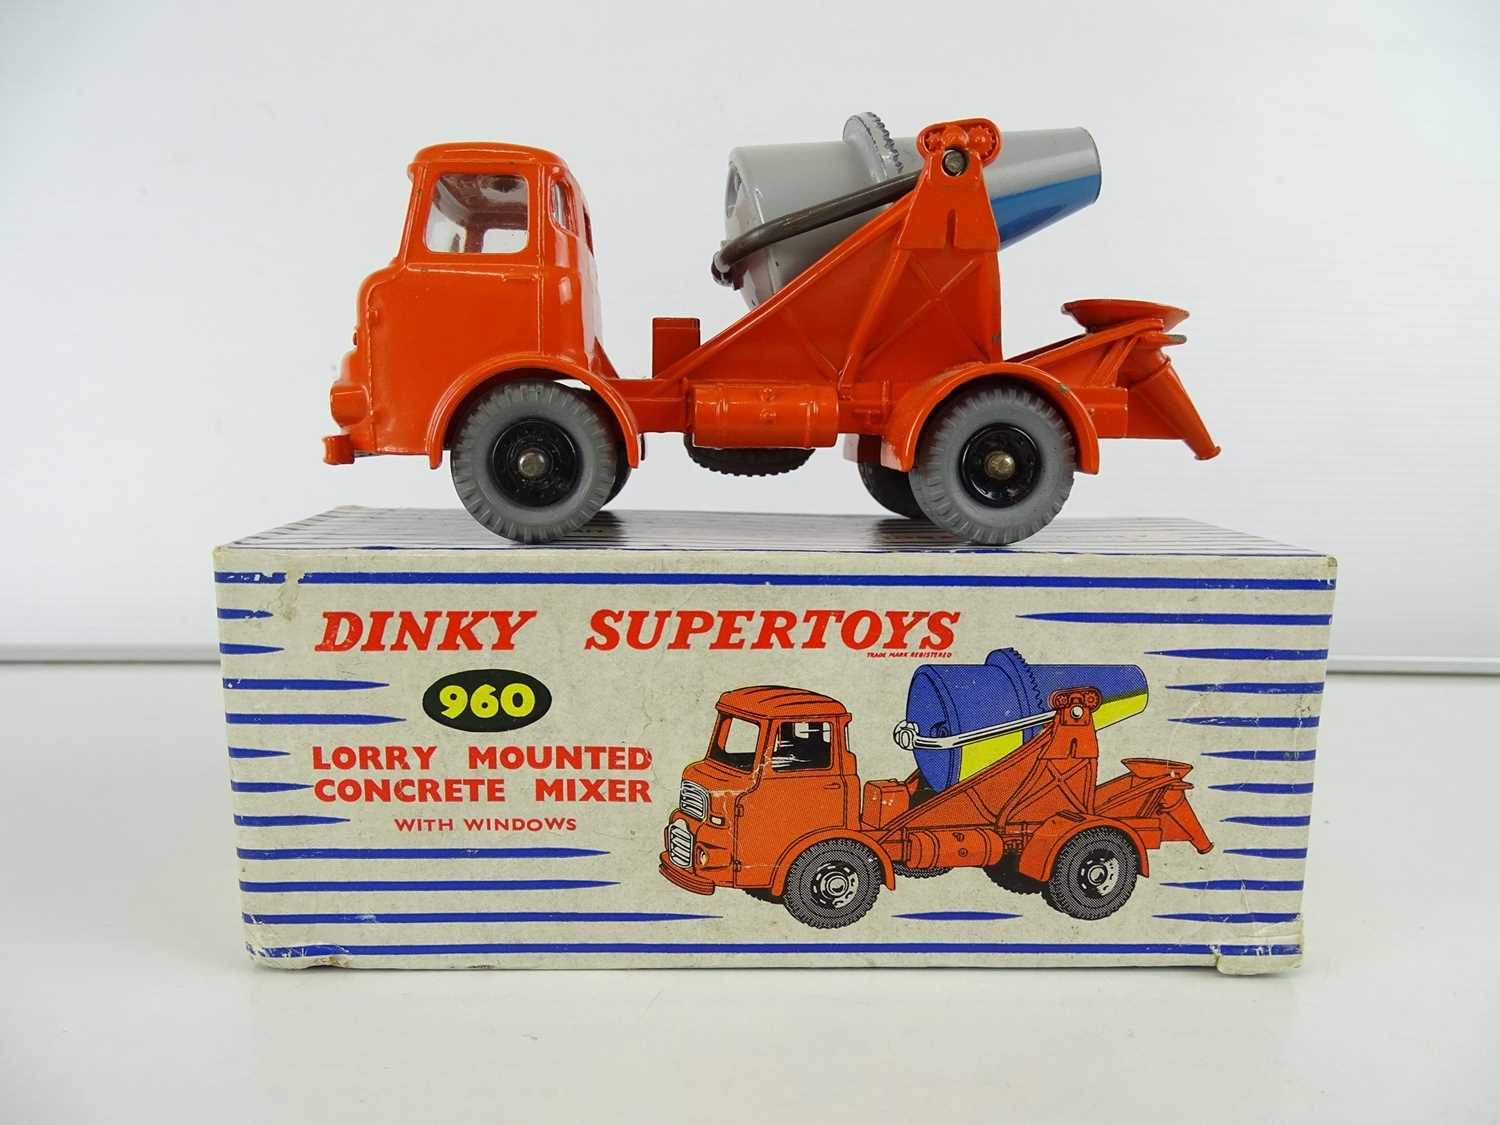 A DINKY 960 Lorry Mounted Concrete Mixer, grey/blue barrel, in blue/white striped SUPERTOYS box -